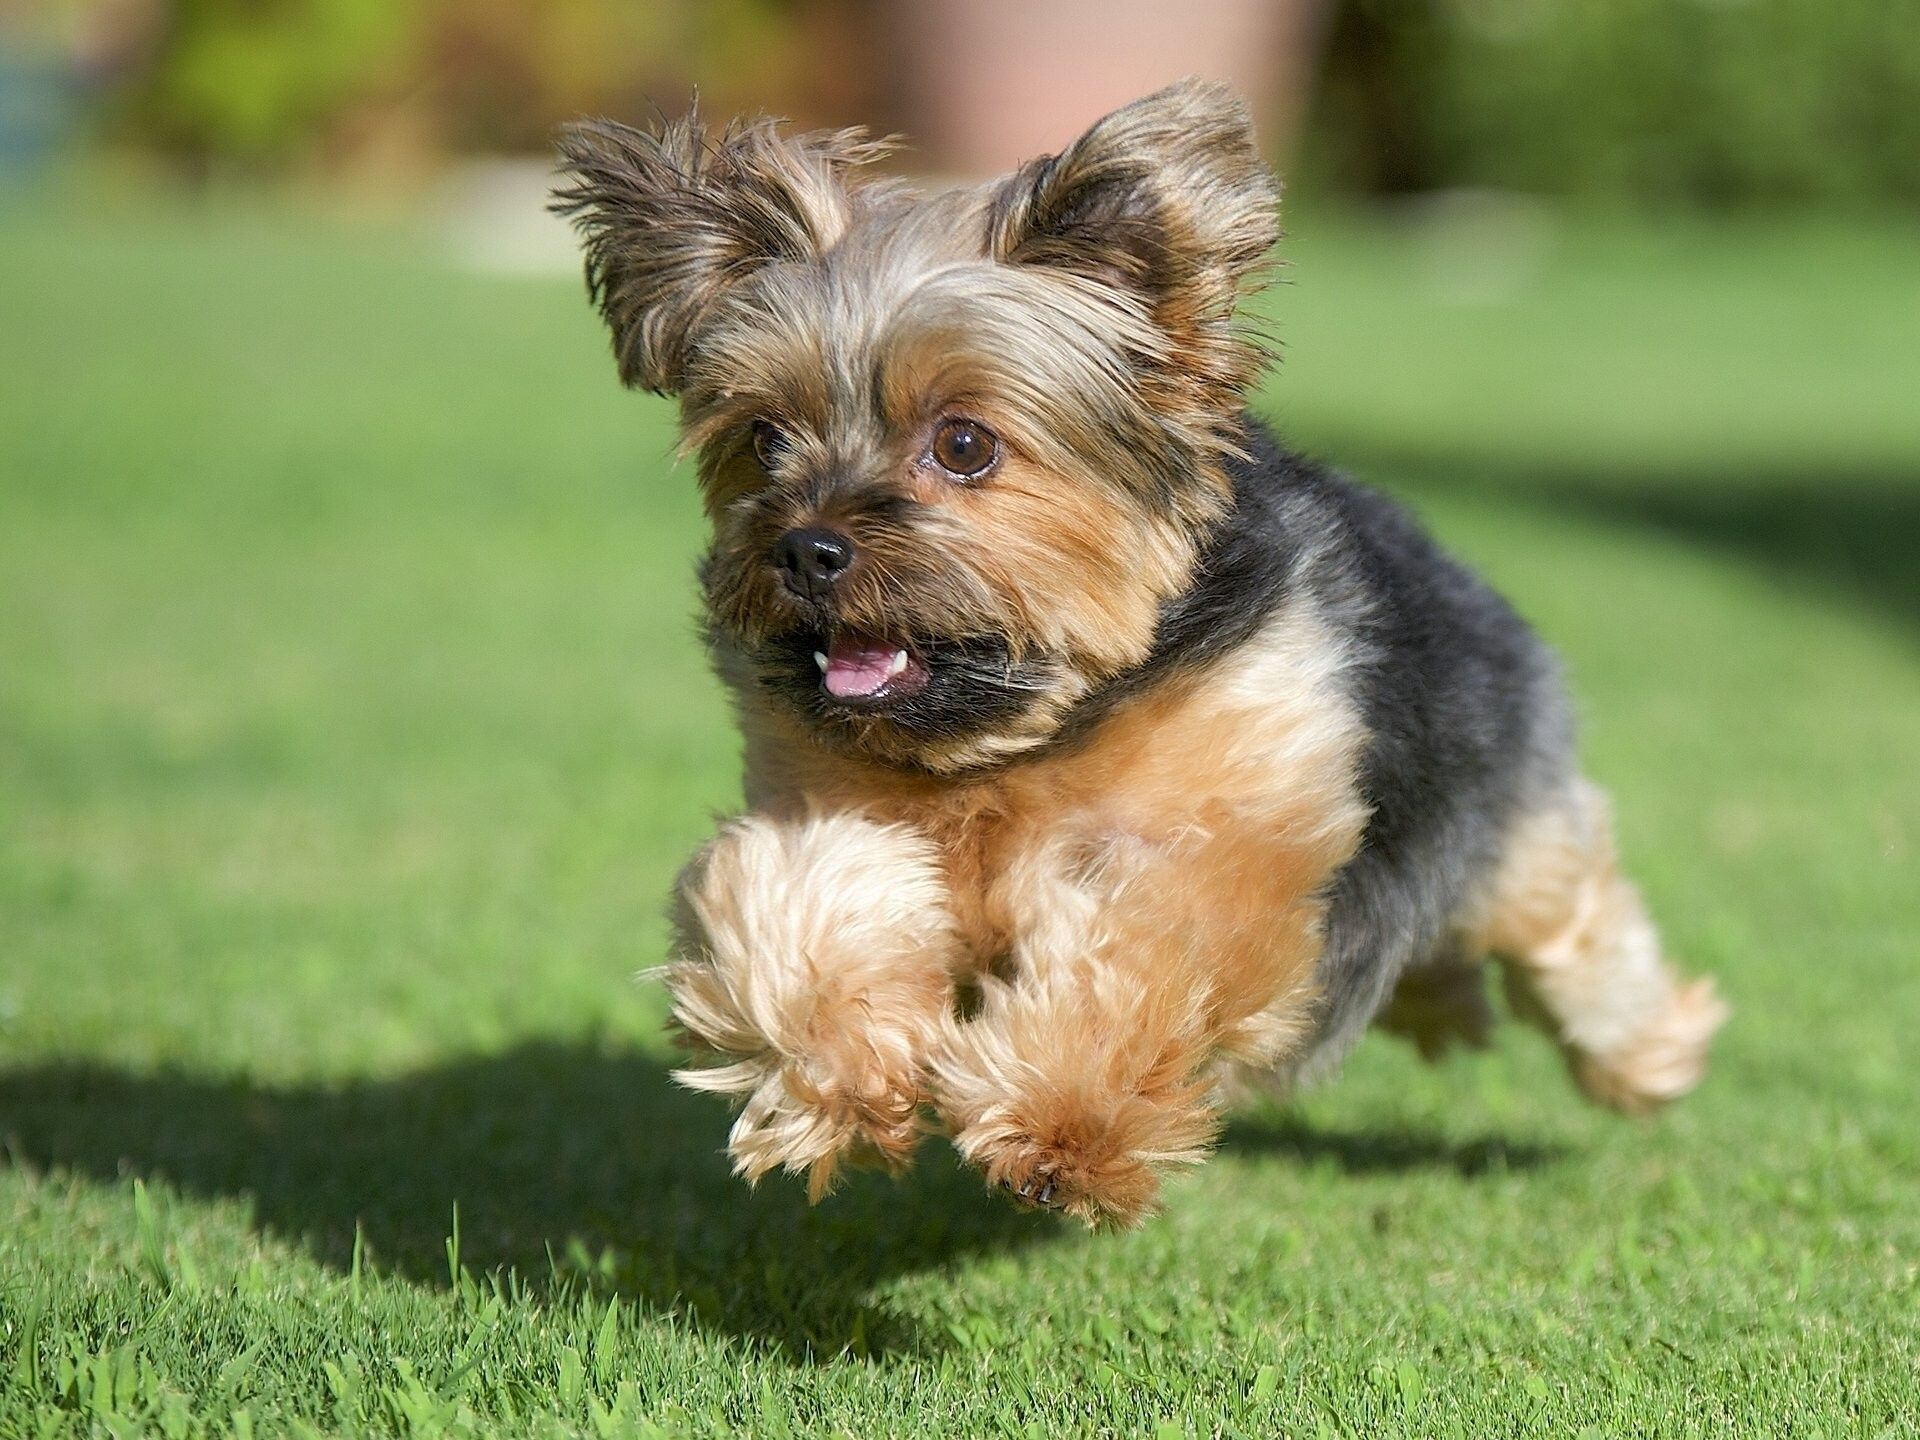 Res 1920x1440 Yorkshire Terrier New York Dog Running Grass Lawn York Dog Yorkie Very Cute Dogs